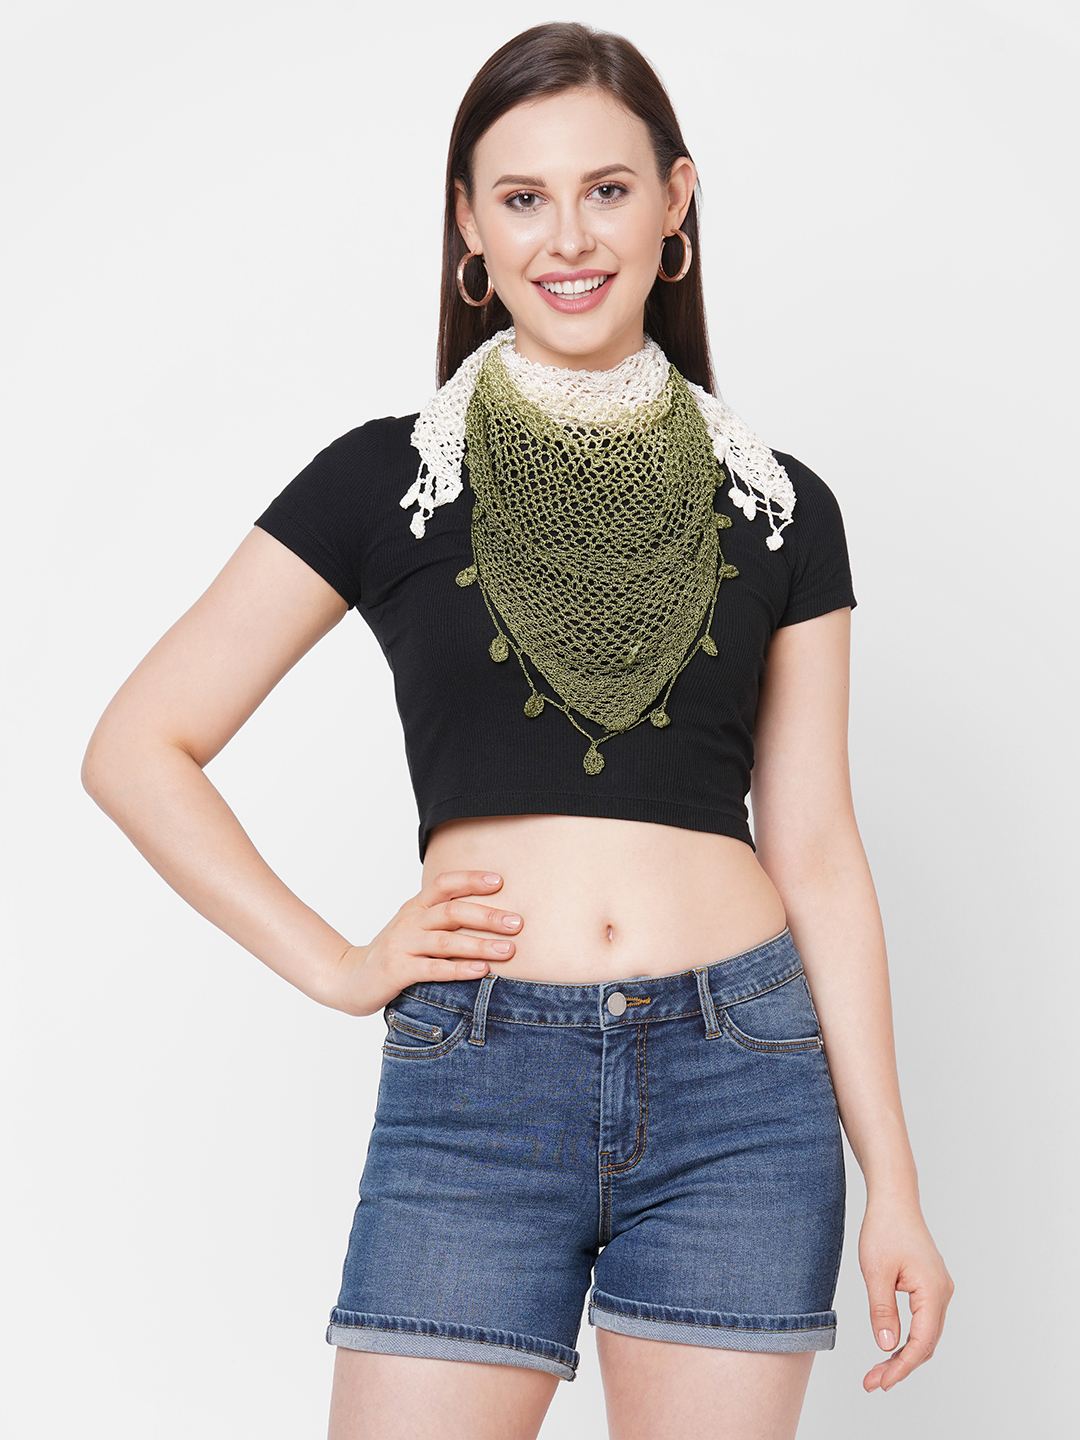 Get Wrapped   Get Wrapped Viscose Hand Made Shaded Crochet Triangle Scarf For Women